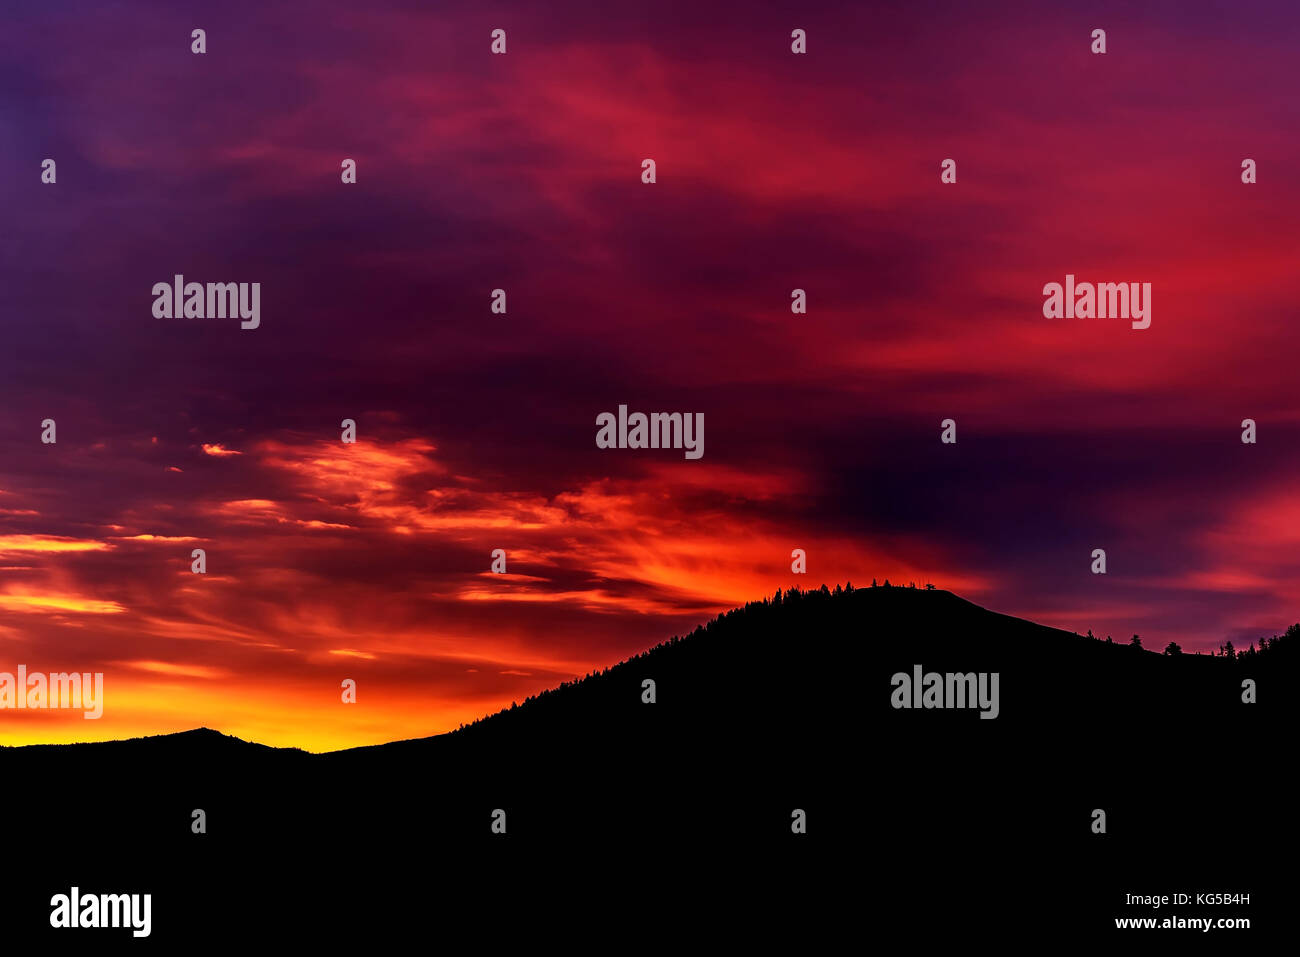 Colorful bright sunrise in yellow, orange, blue tones with clouds, illuminated by the rays of the sun in the sky Stock Photo